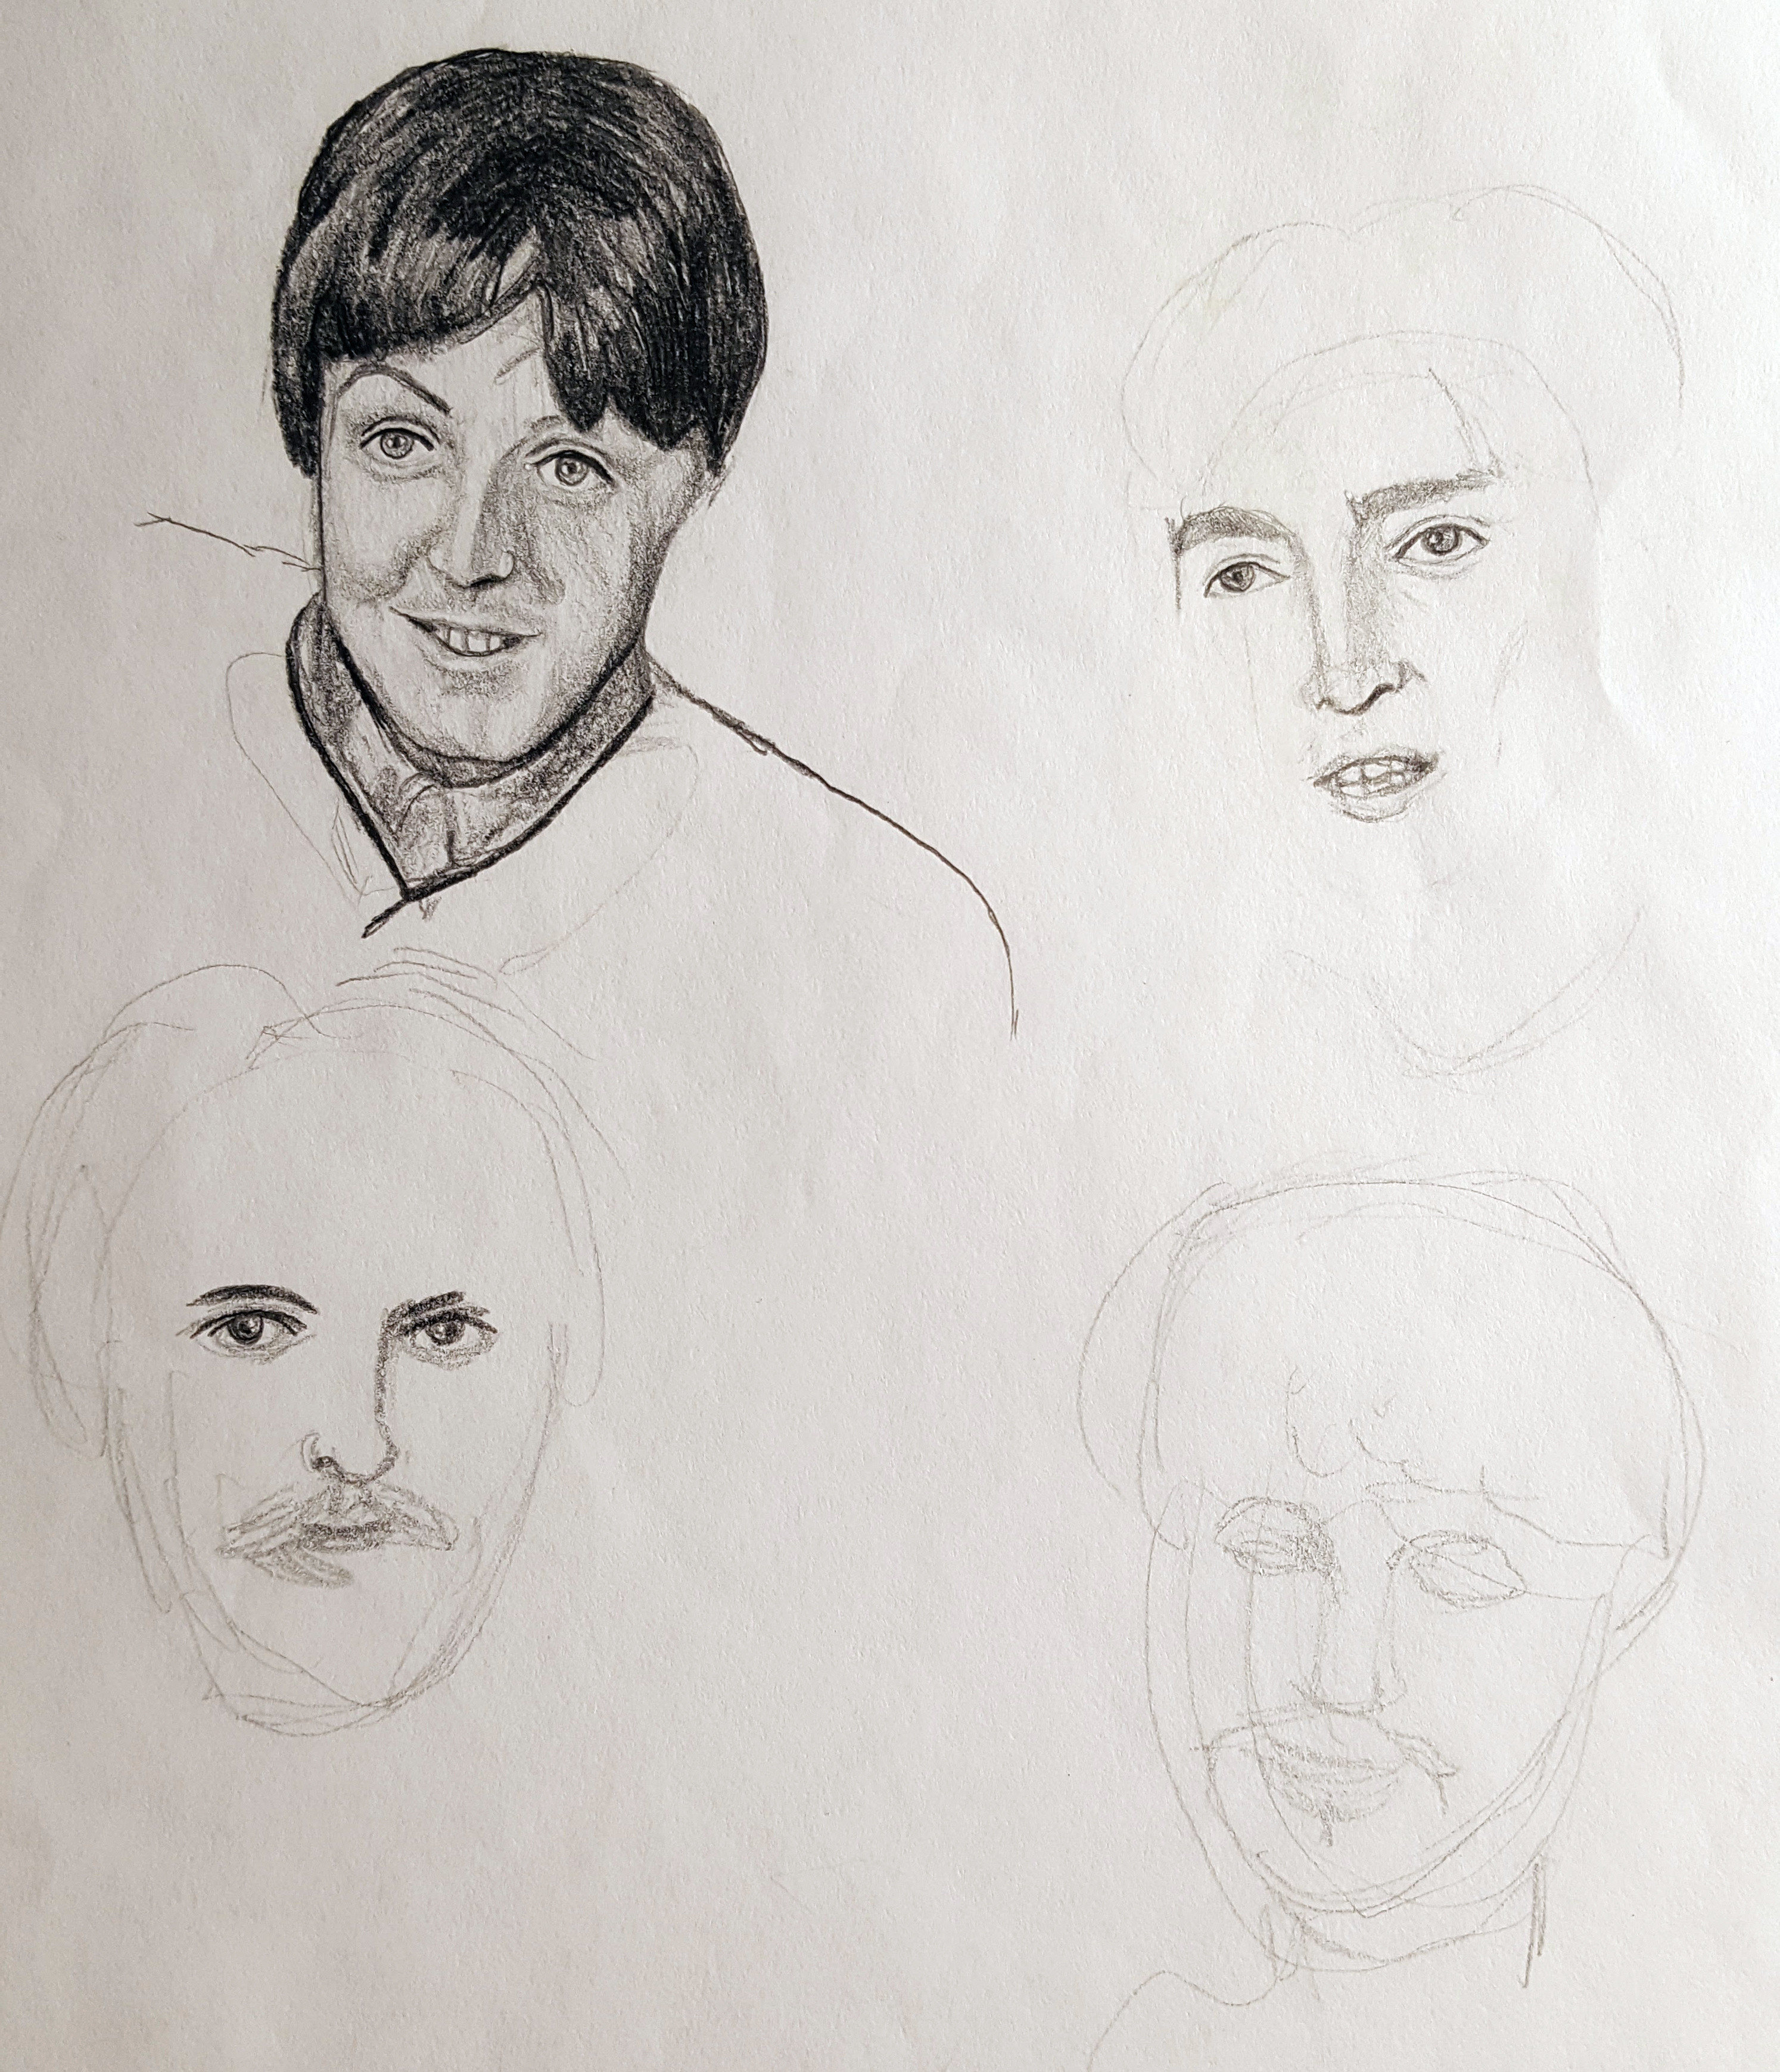 Beatles. Only Paul McCartney finished, ha.